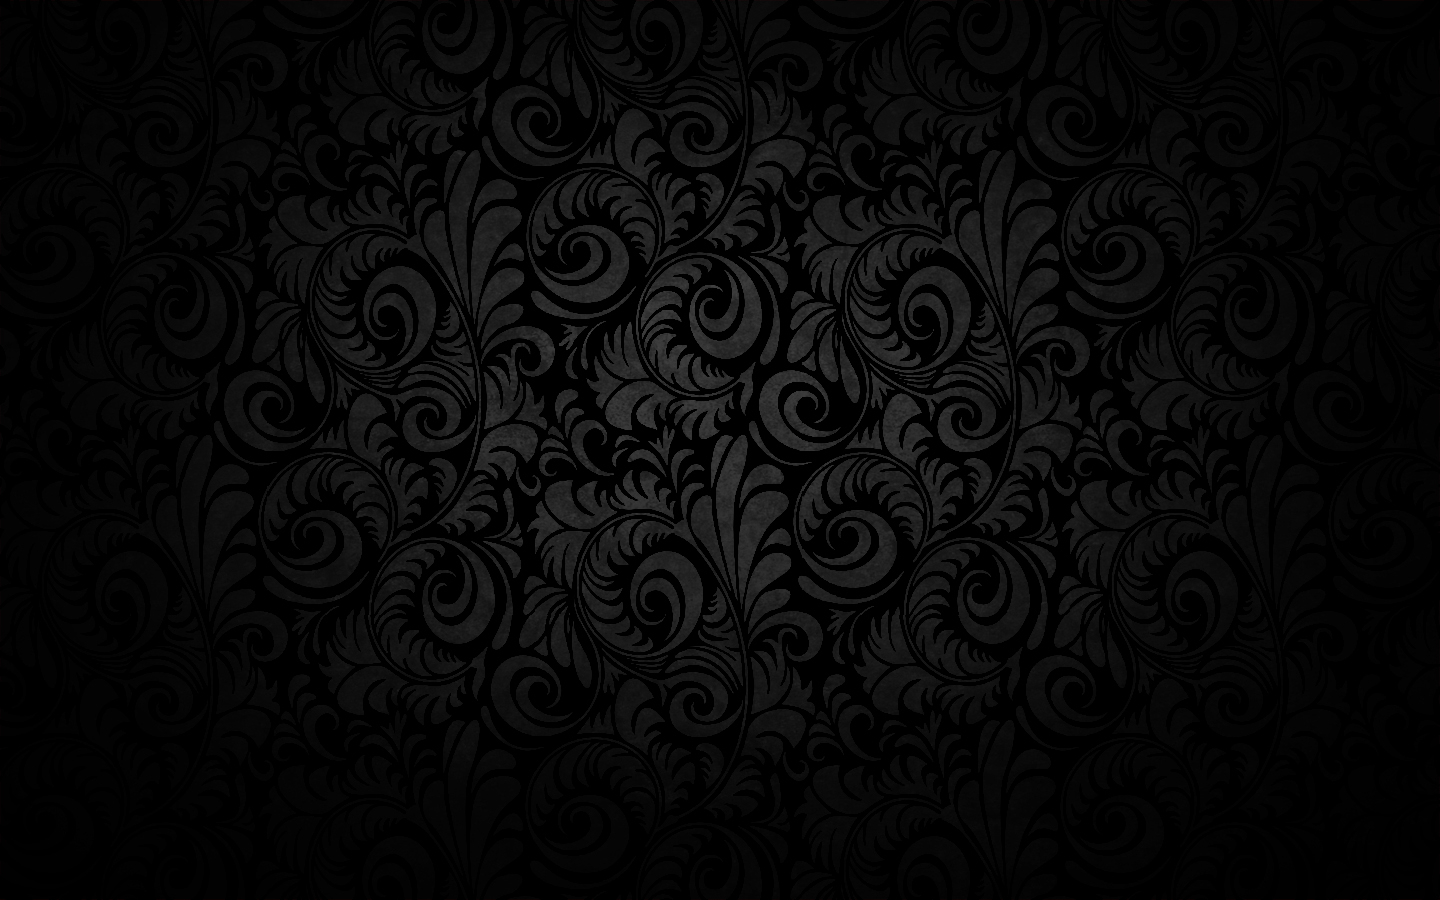 Hd Desktop Wallpapers Black White Wallpaper Black On